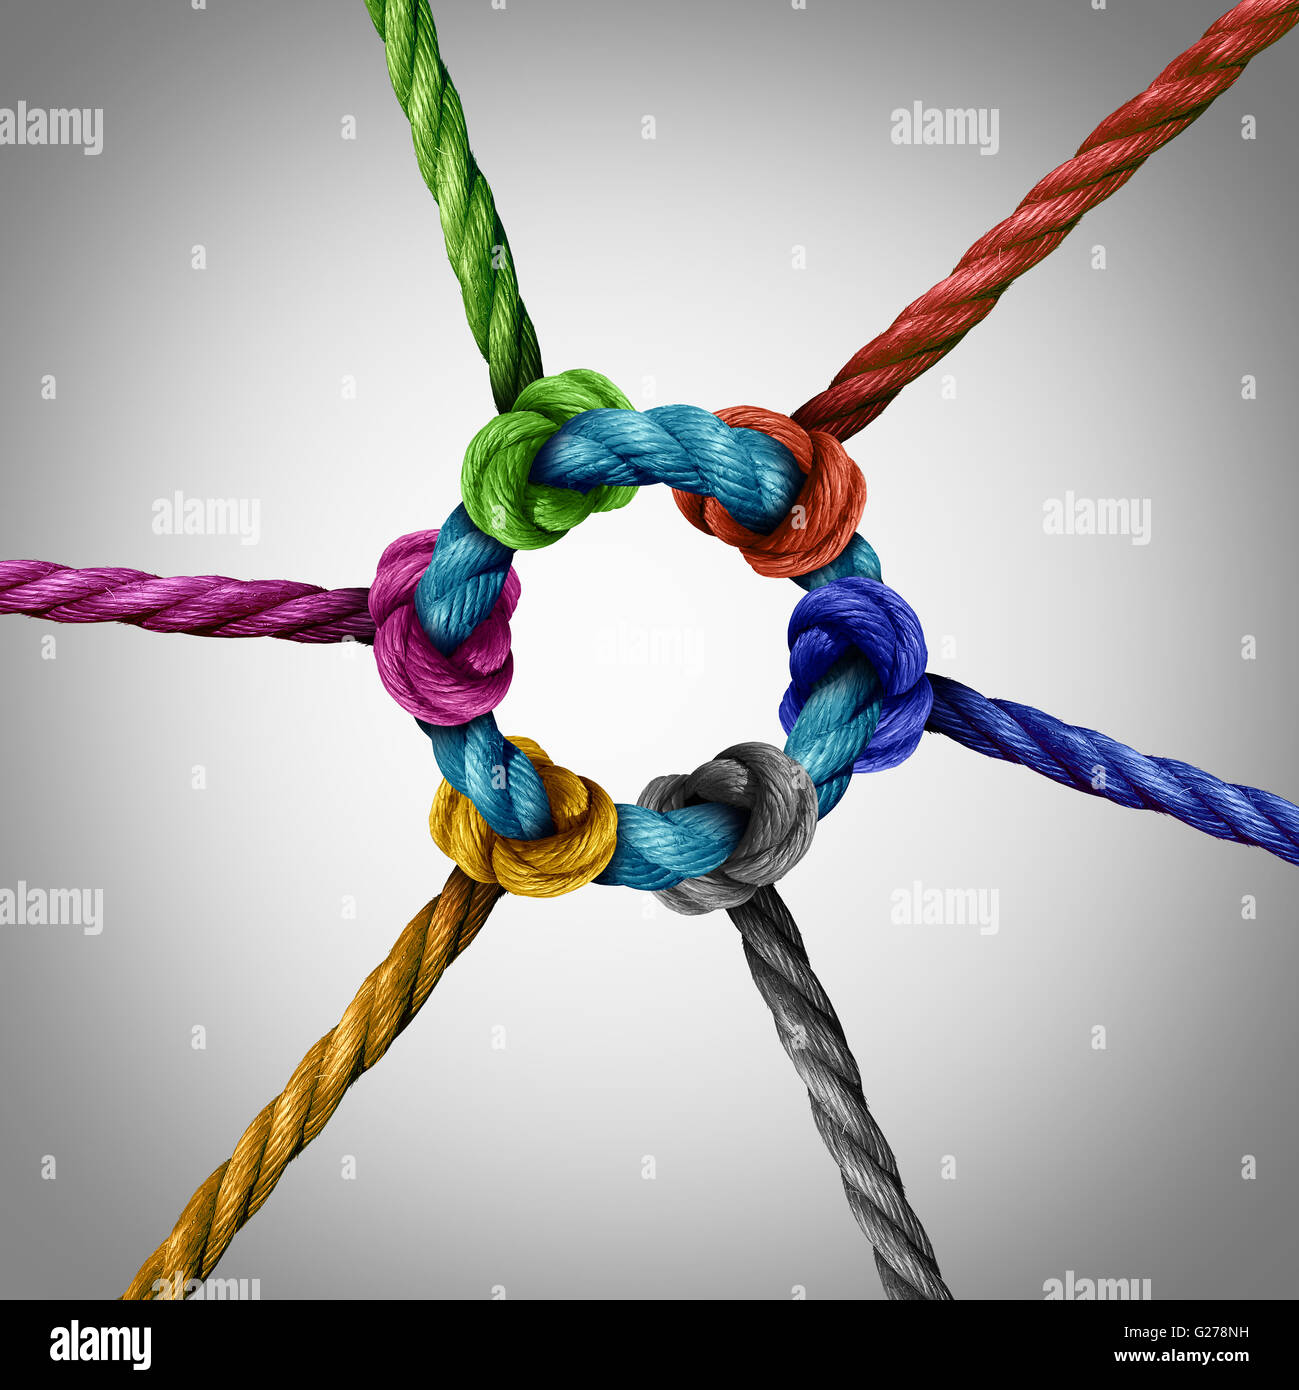 Central network connection business concept as a group of diverse ropes connected to a circle central rope as a - Stock Image